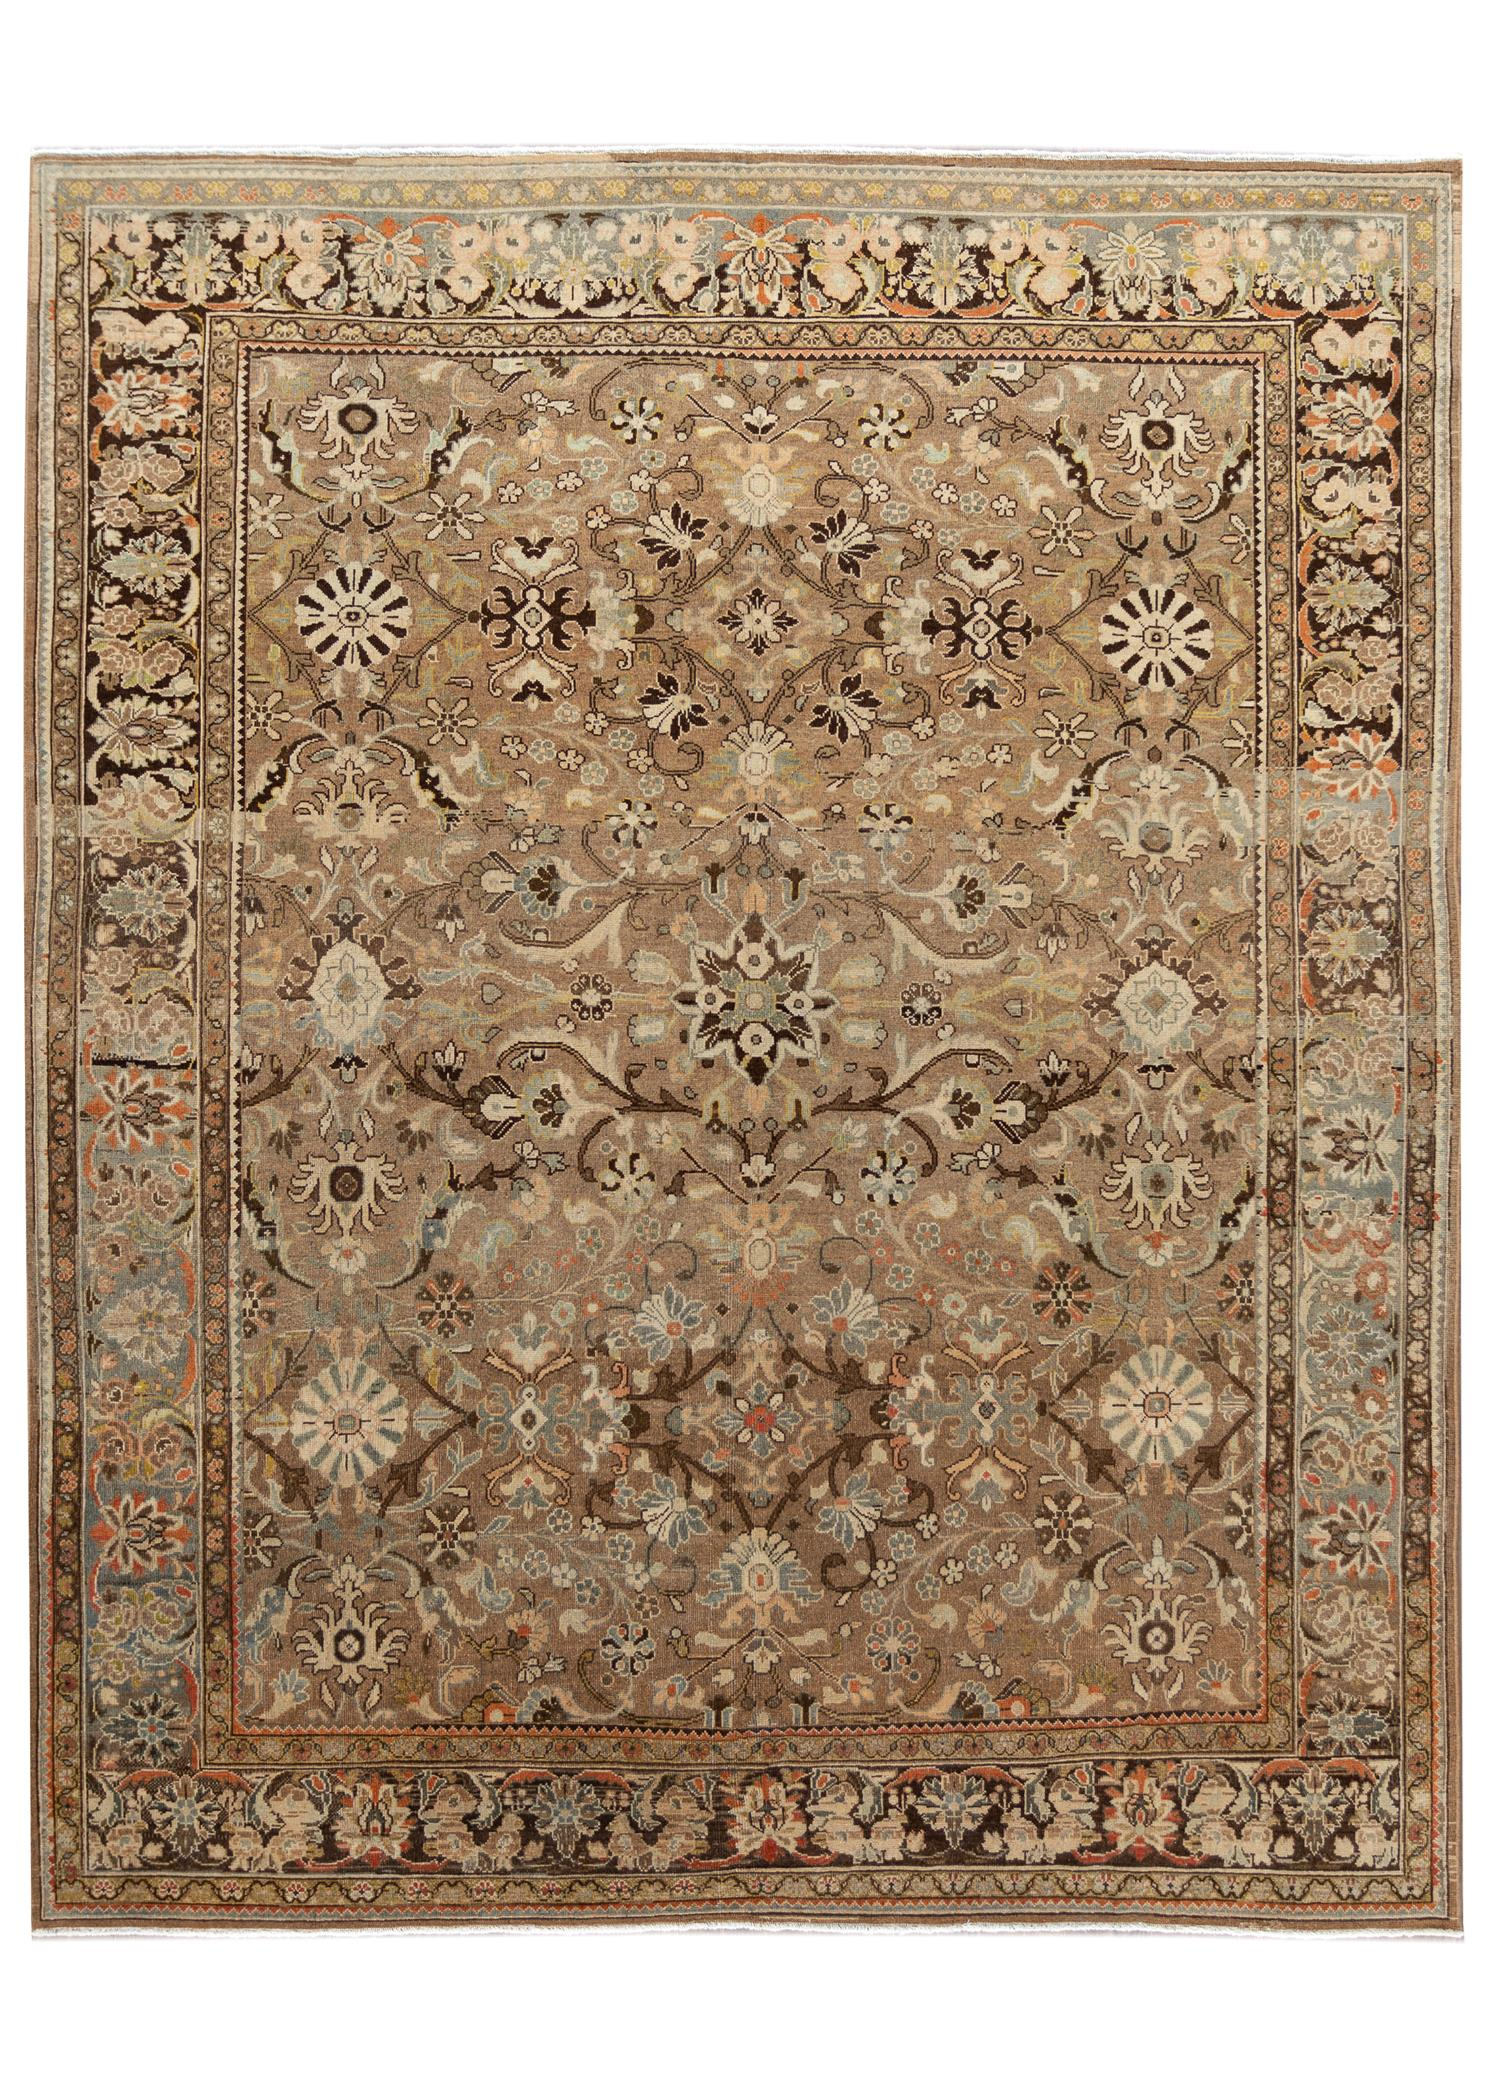 Antique Sultanabad Rug, #10235246, 9' x 11'